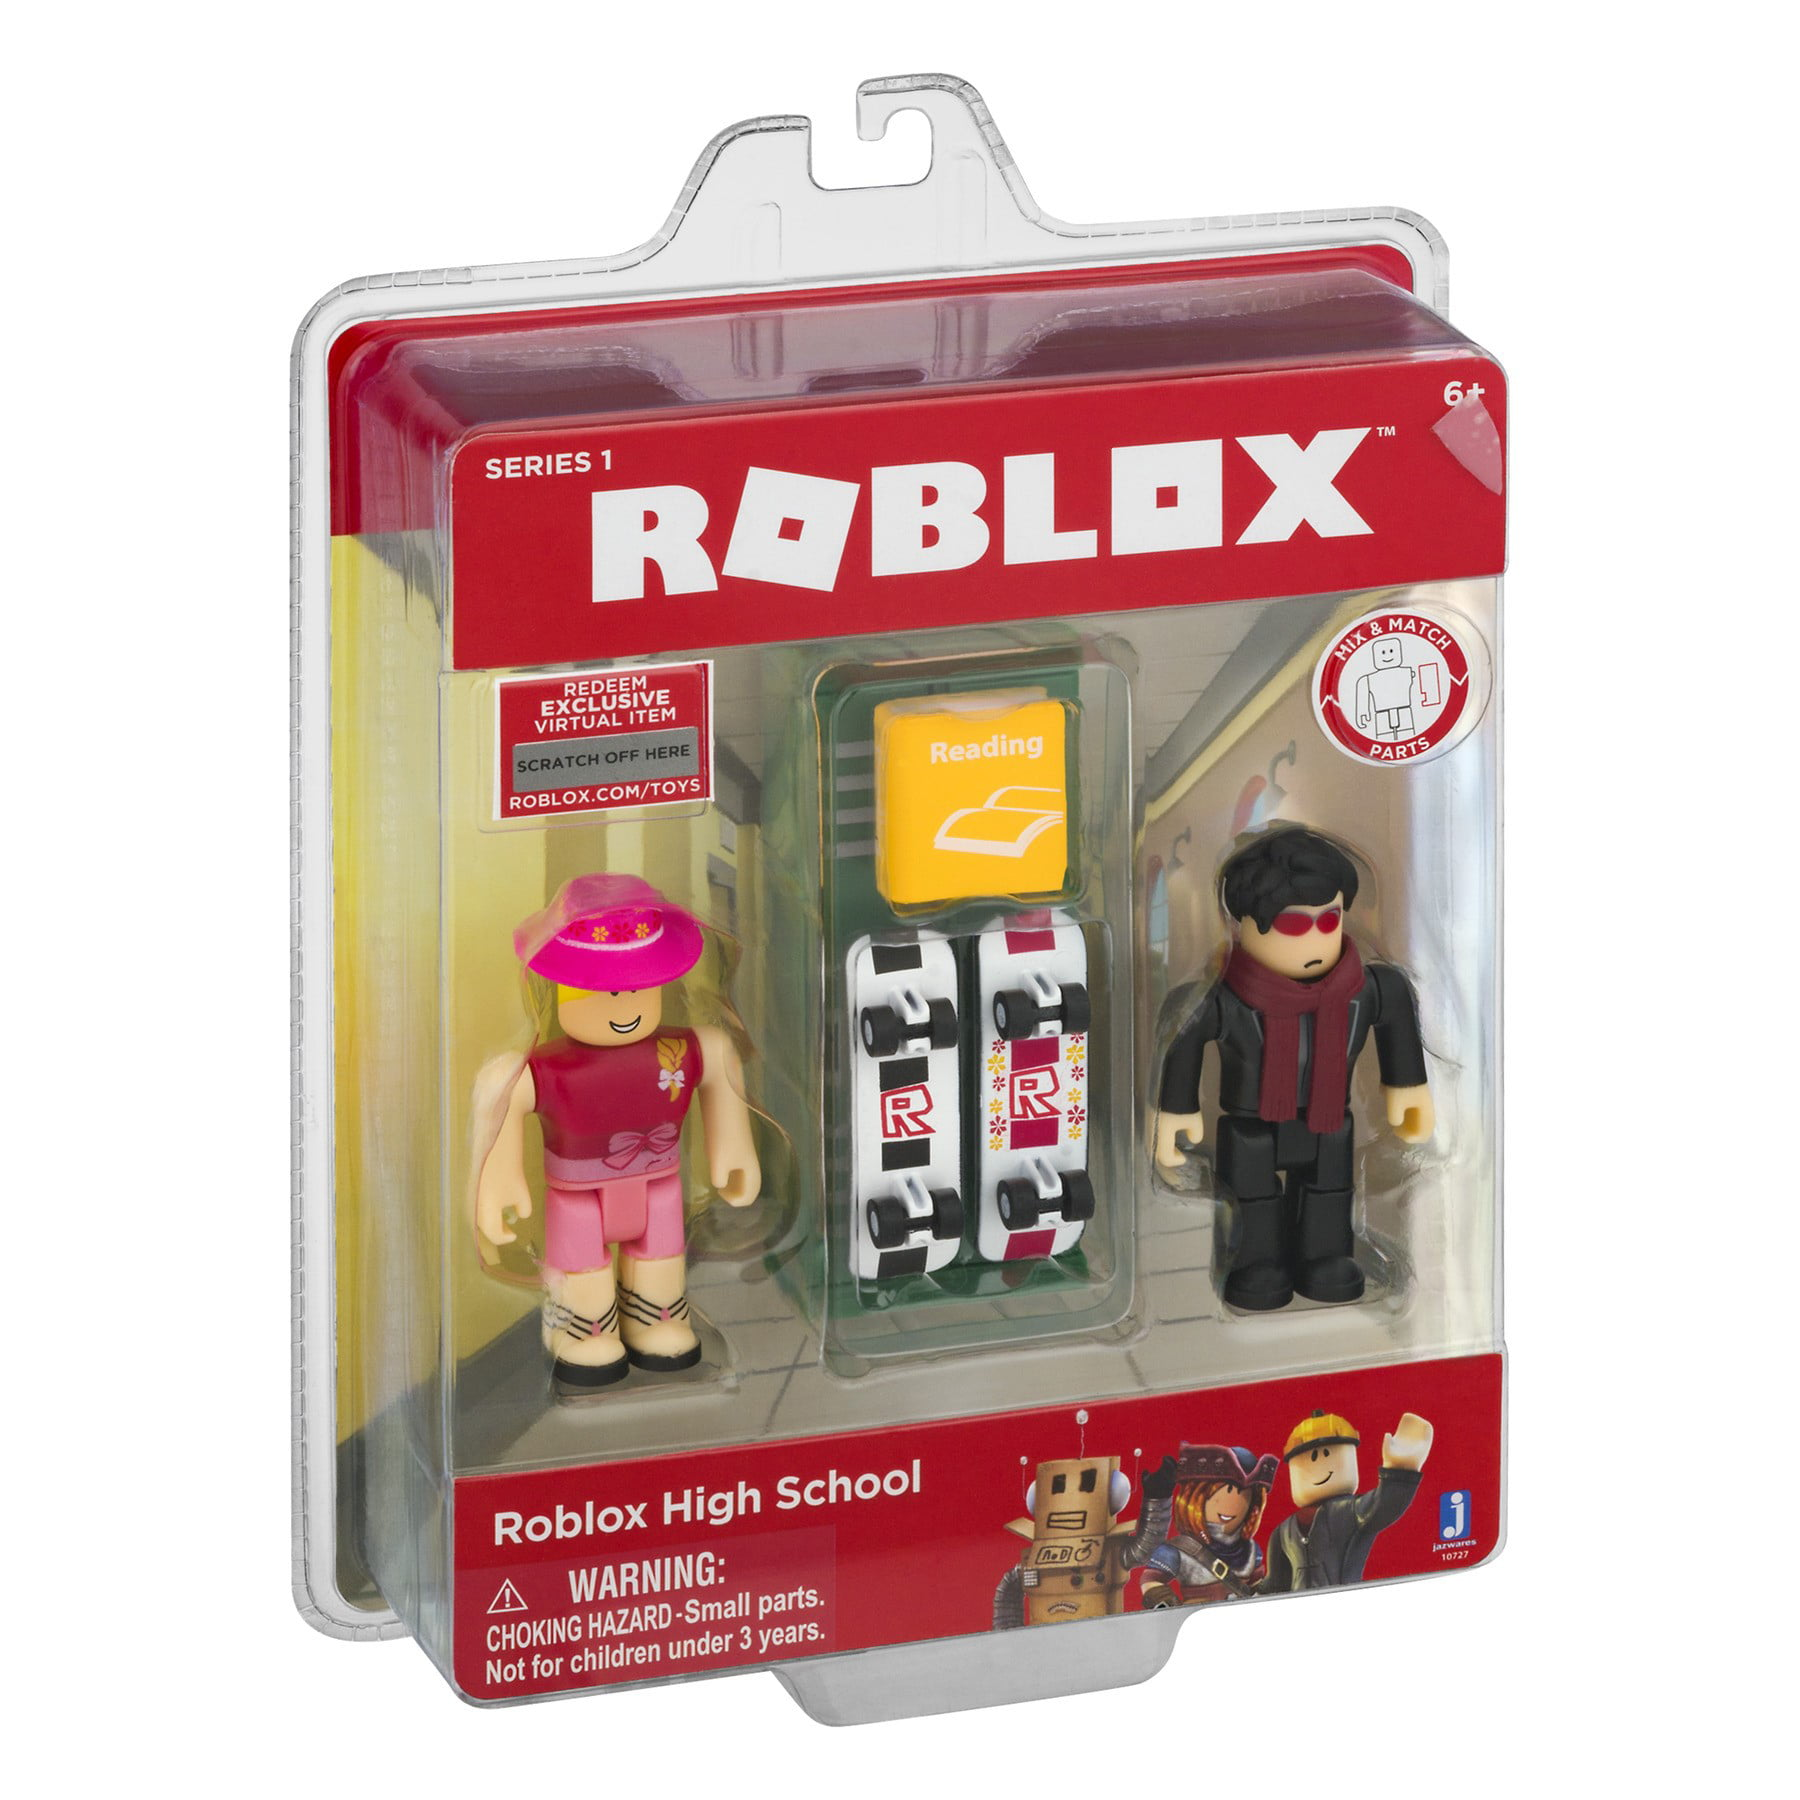 Roblox High School Outfit Codes For Girls Part 2 Unicorny Roblox Action Collection Roblox High School Game Pack Includes Exclusive Virtual Item Walmart Com Walmart Com